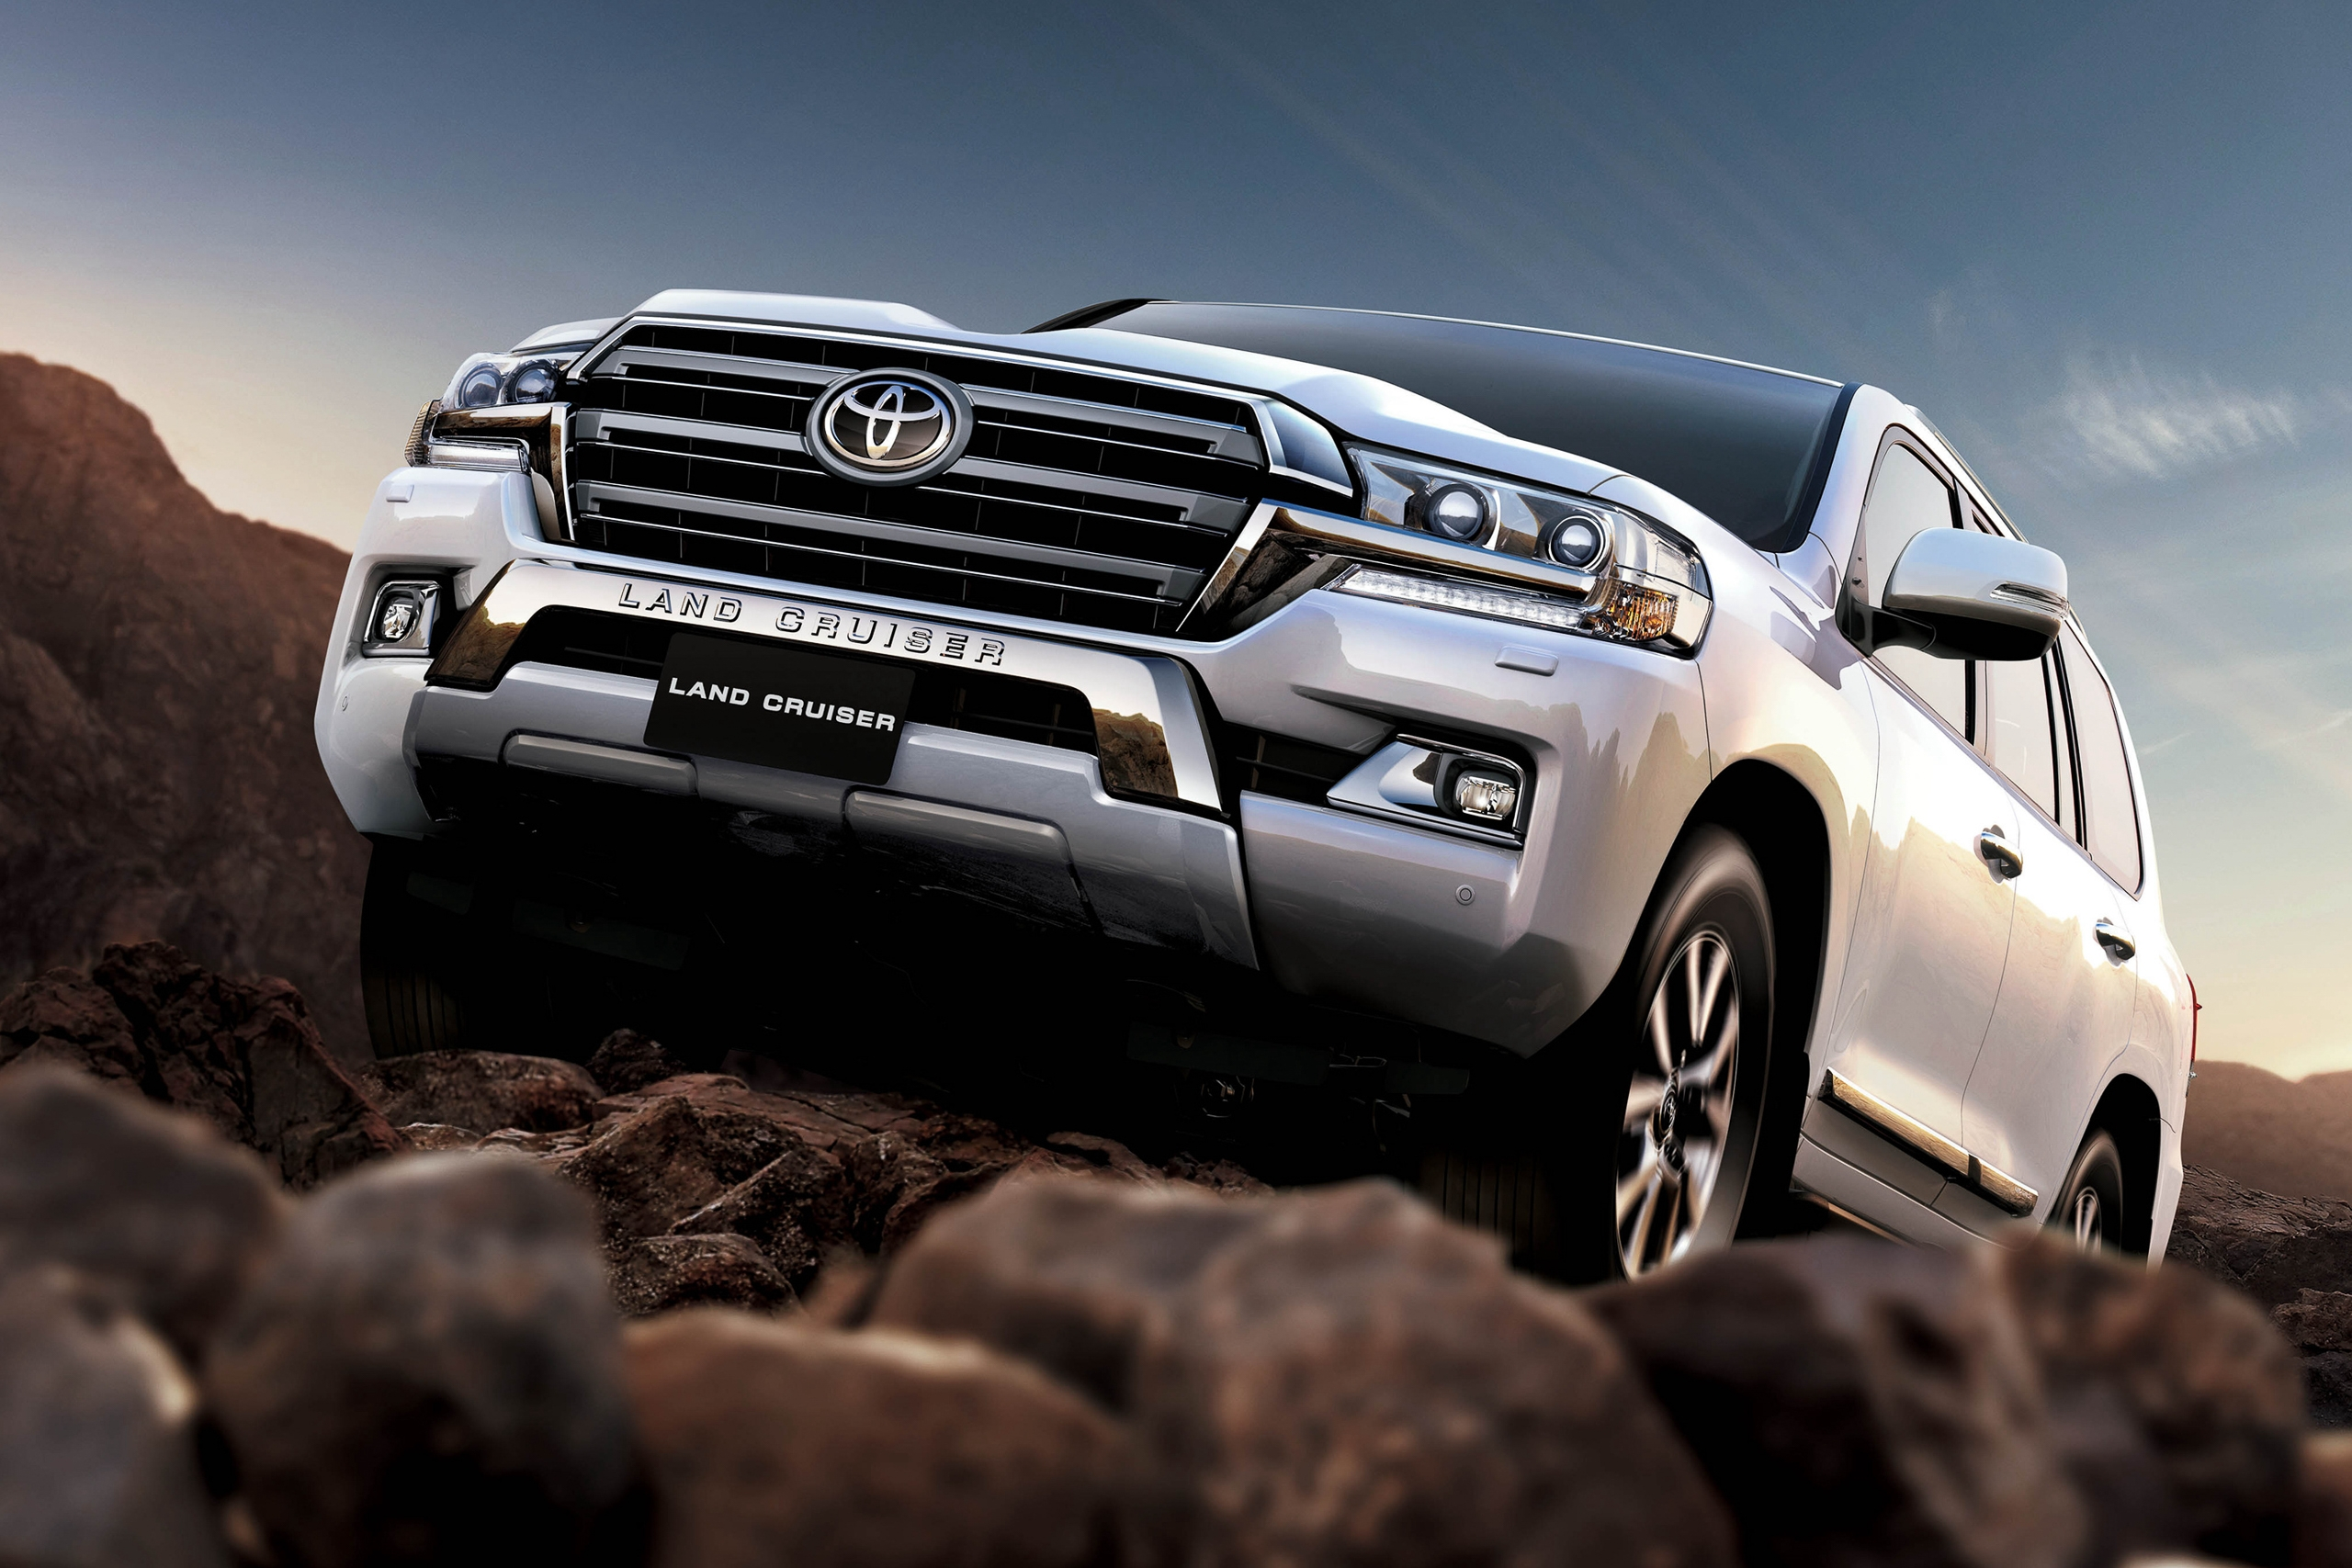 91 All New 2020 Toyota Land Cruiser Diesel Price Design and Review